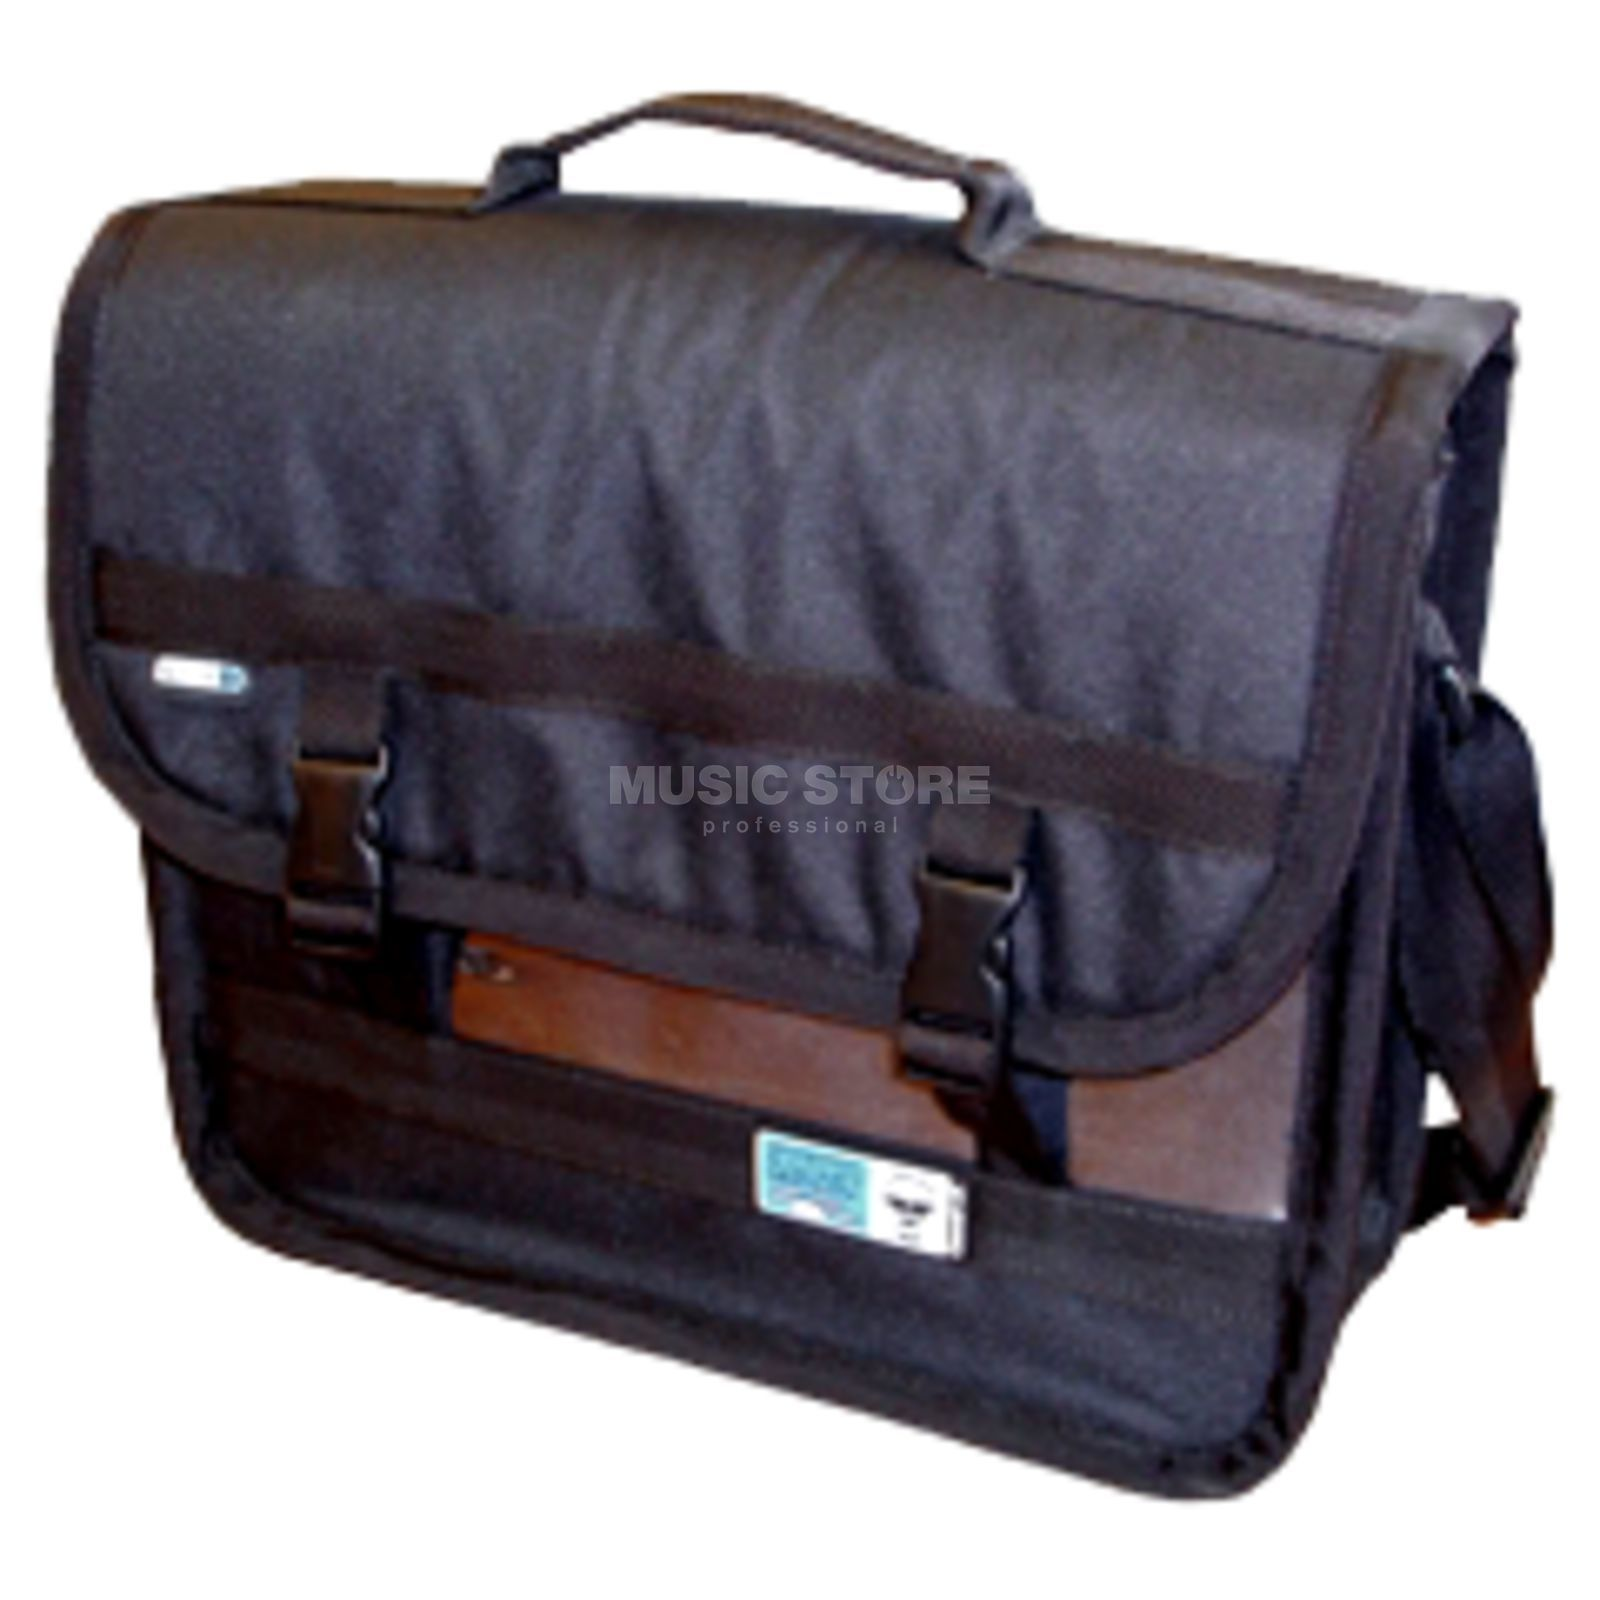 Protection Racket Utility Bag 9021, Black Produktbild